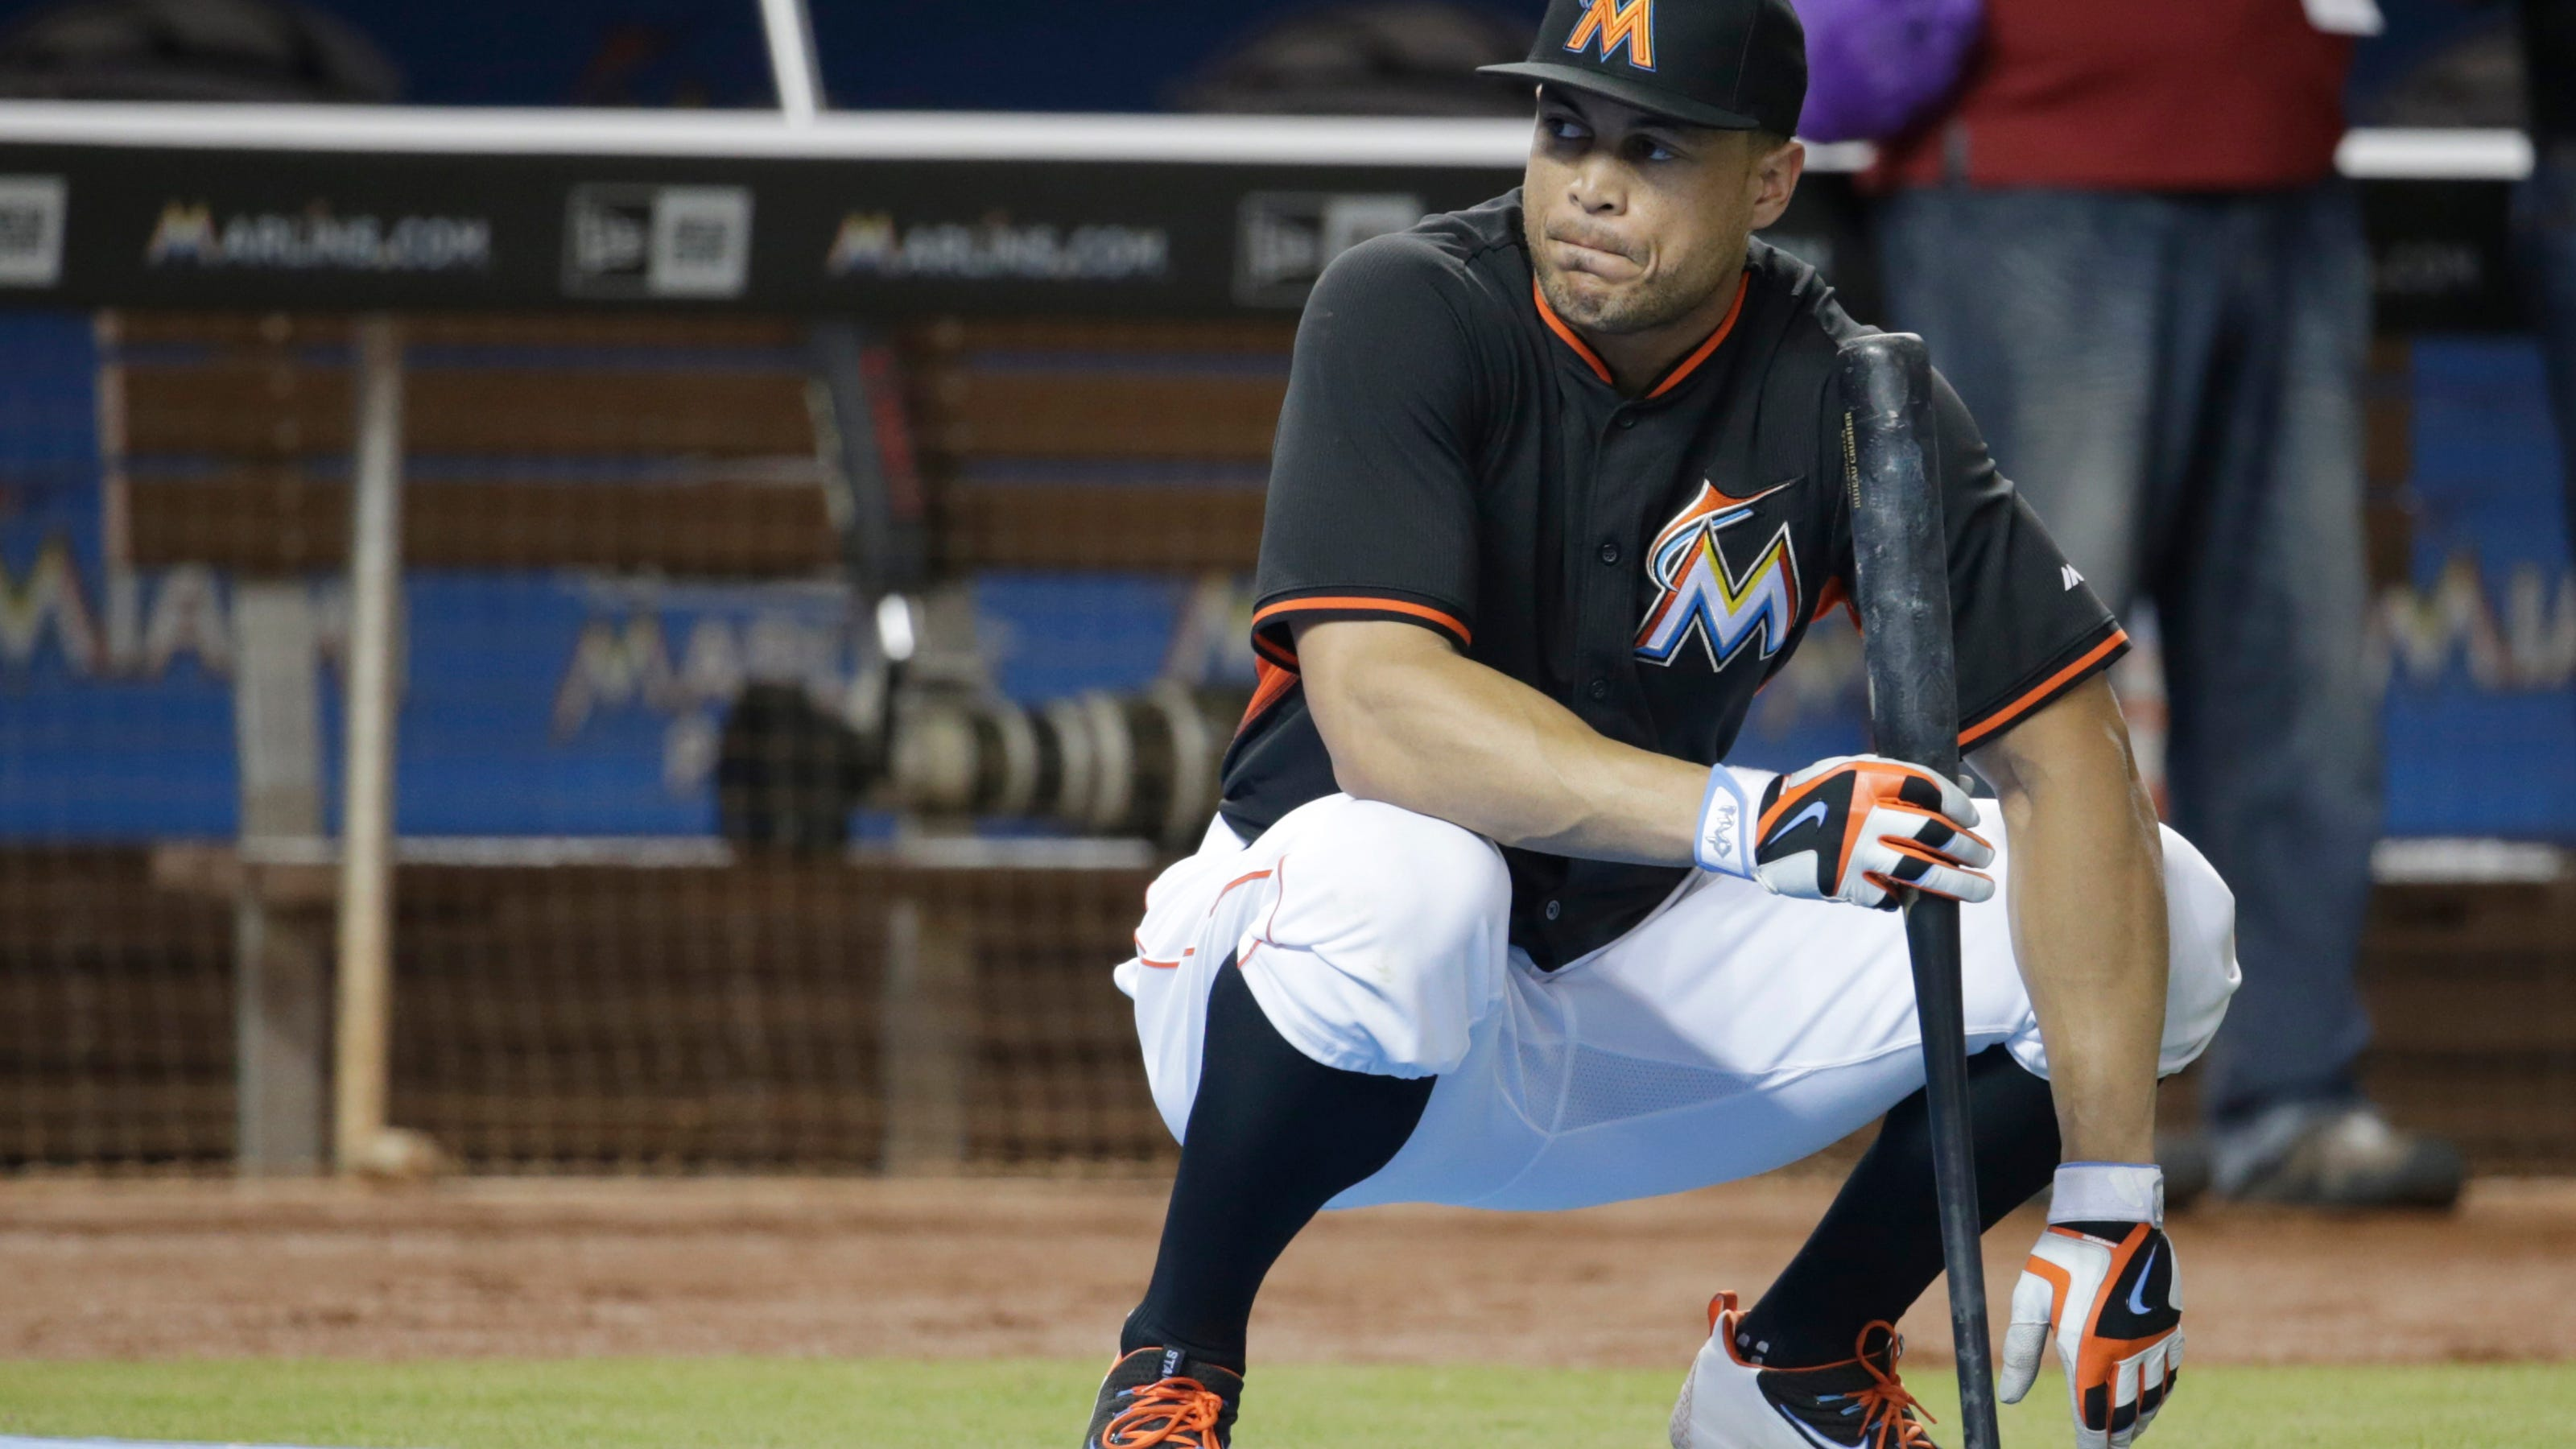 Slugger Stanton Eager To Rebound From Awful 2016 Season